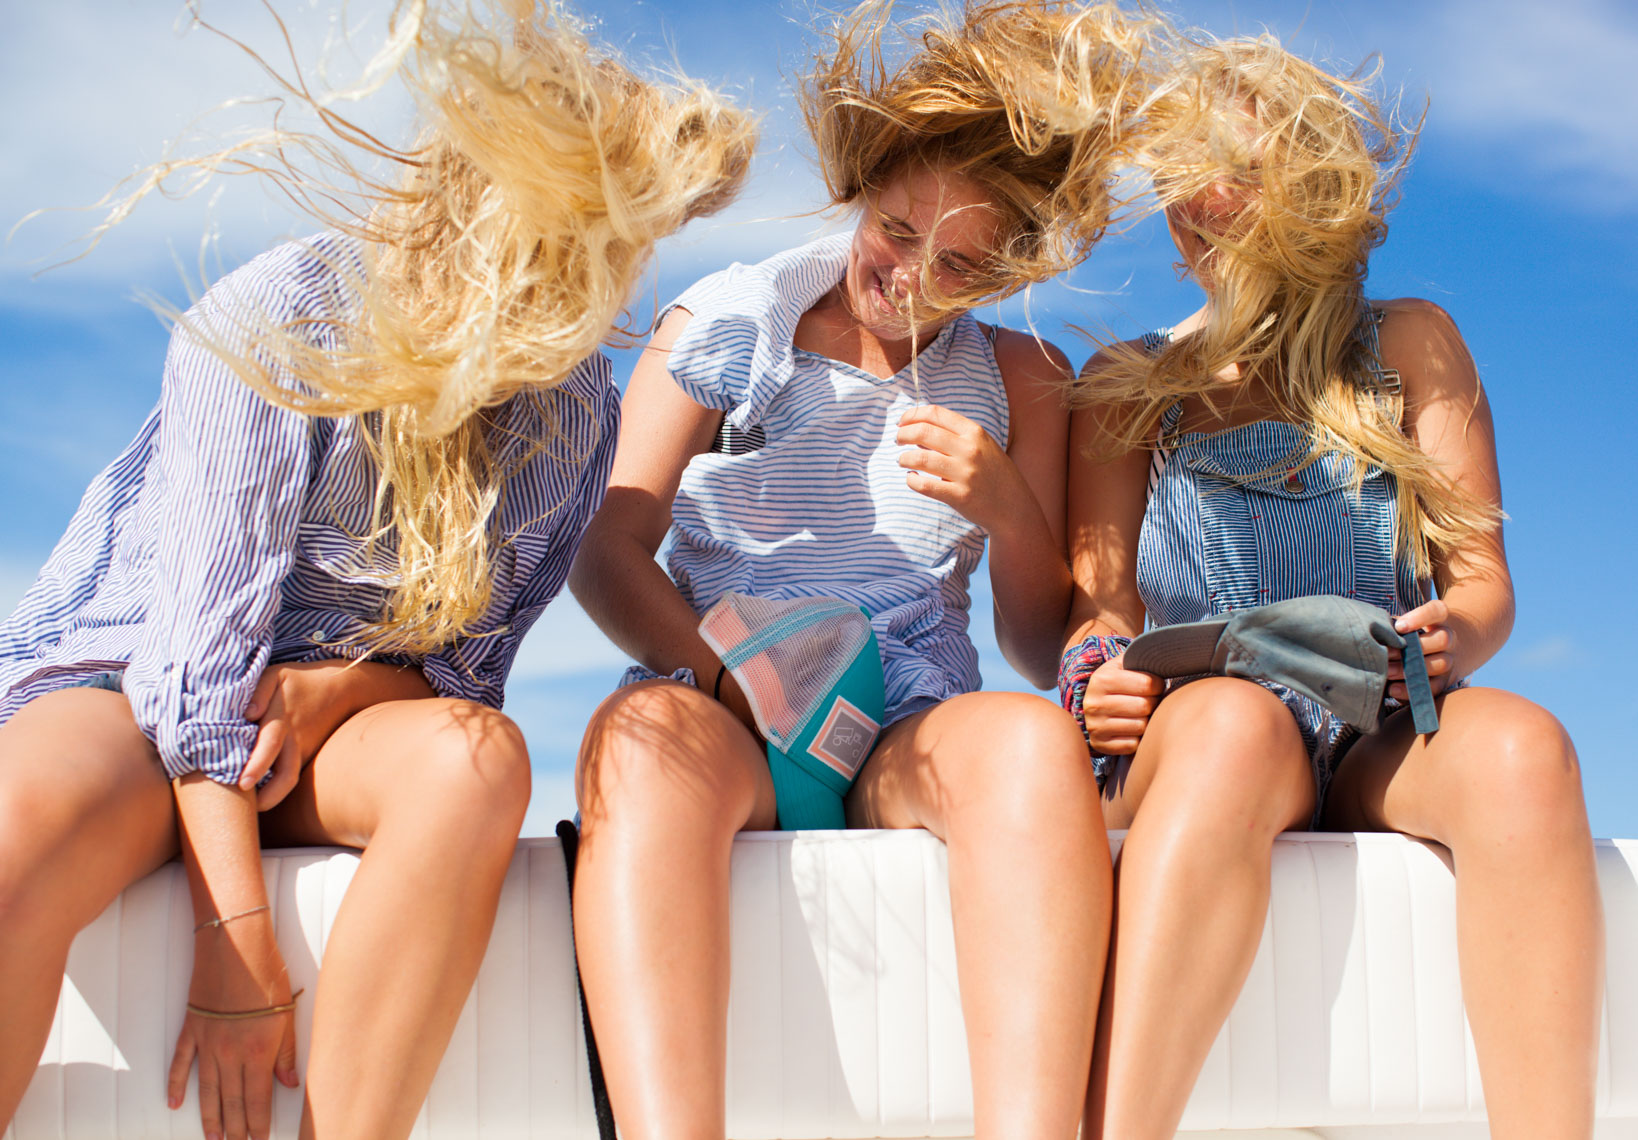 Girls hair blowing in wind | Commercial Lifestyle Photographer